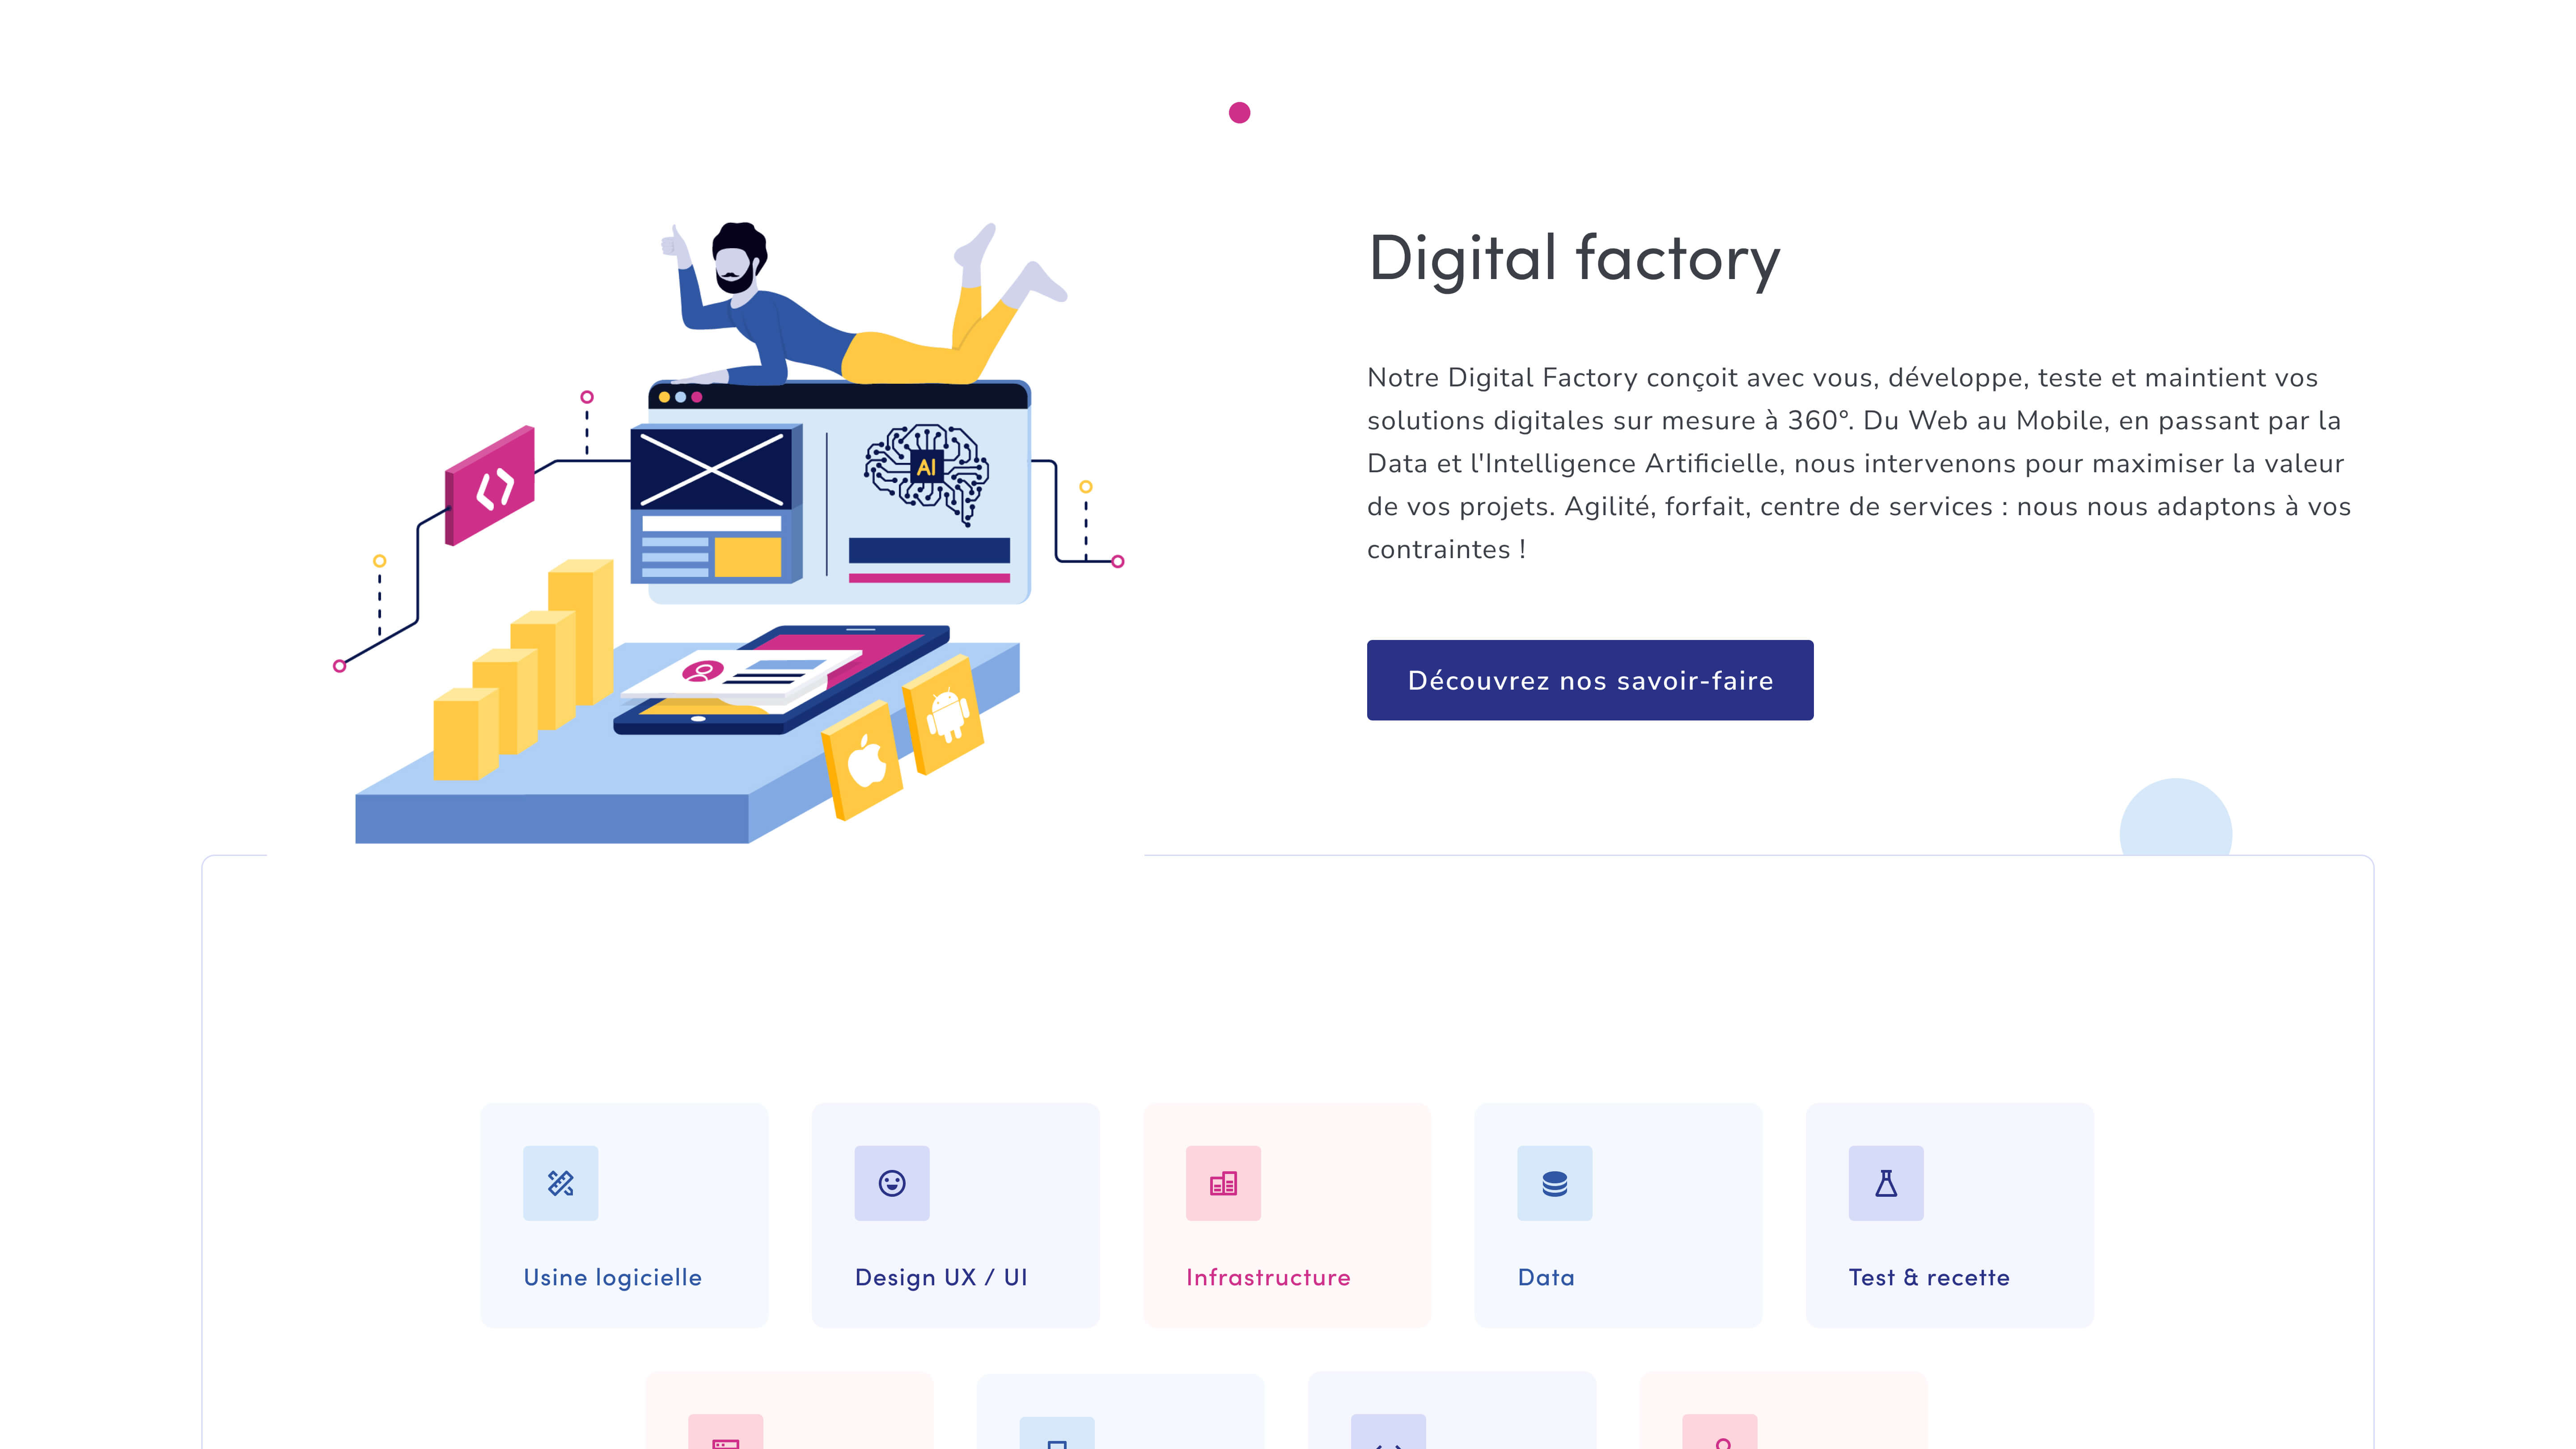 Web interface that illustrates the digital factory of the Amiltone agency